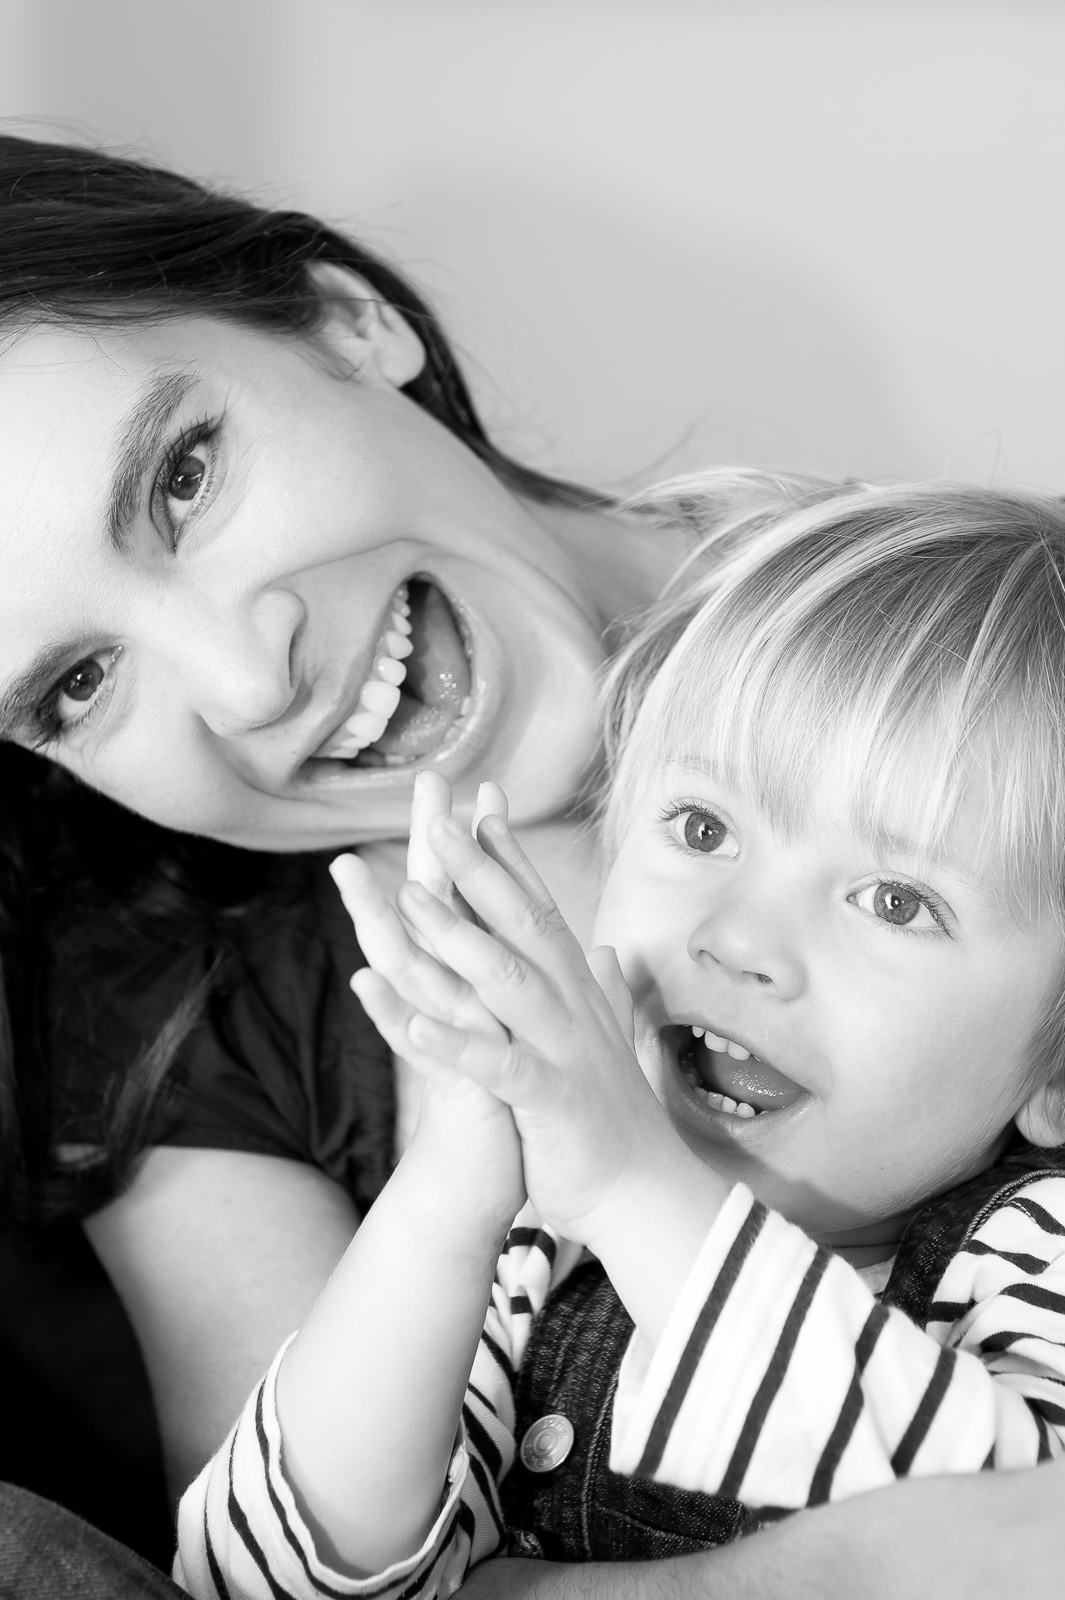 portrait photographer, portrait photography derby, Close-up family portrait, in black and white, of a woman and her young son: Liz & Theo